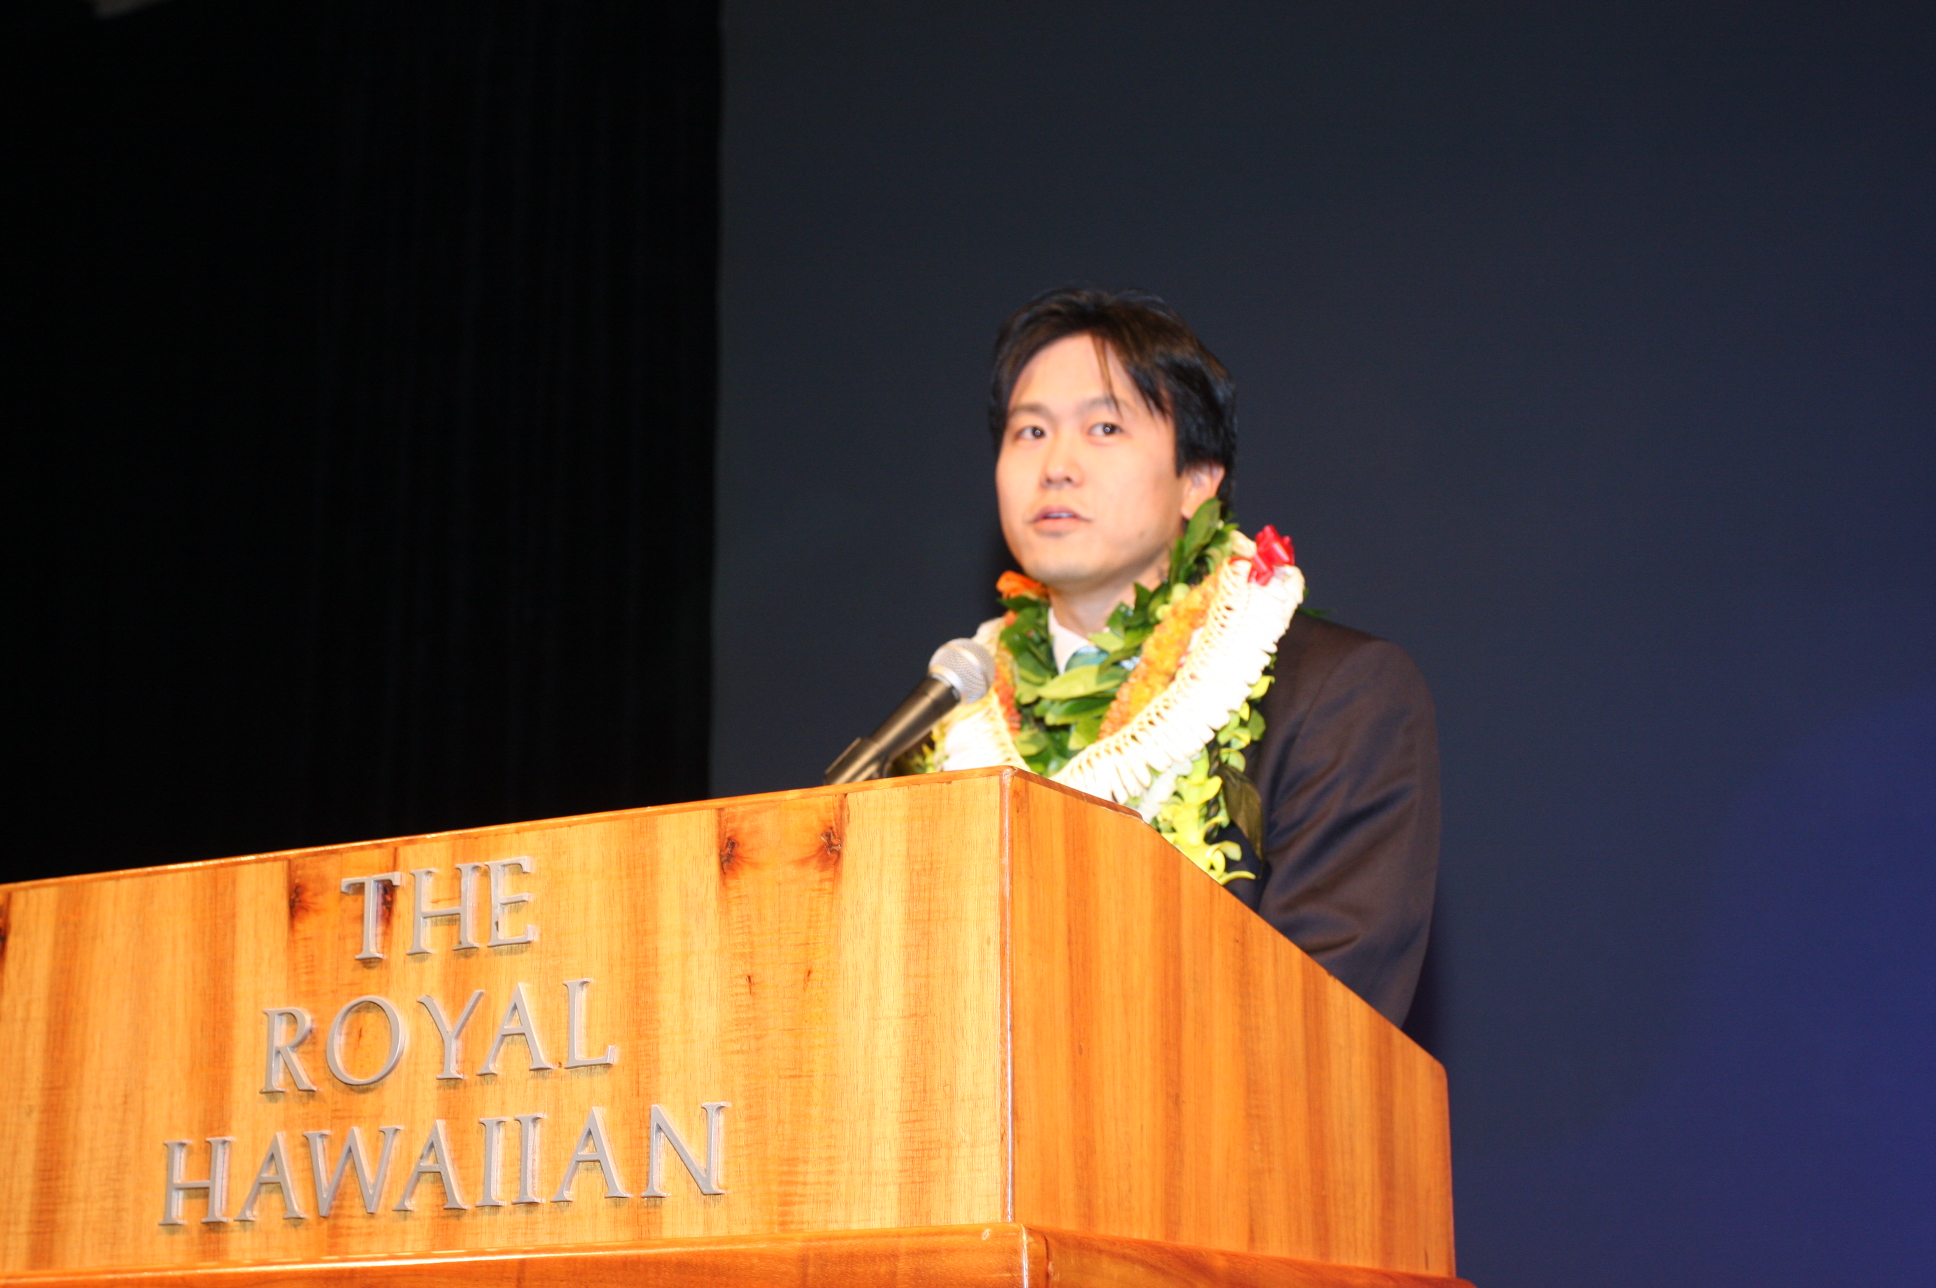 Rep. Jon Riki Karamatsu's speech on his Lt. Governor platform for the State of Hawaii, some of which was drafted in 1996 and the rest written between 2002 to 2009.